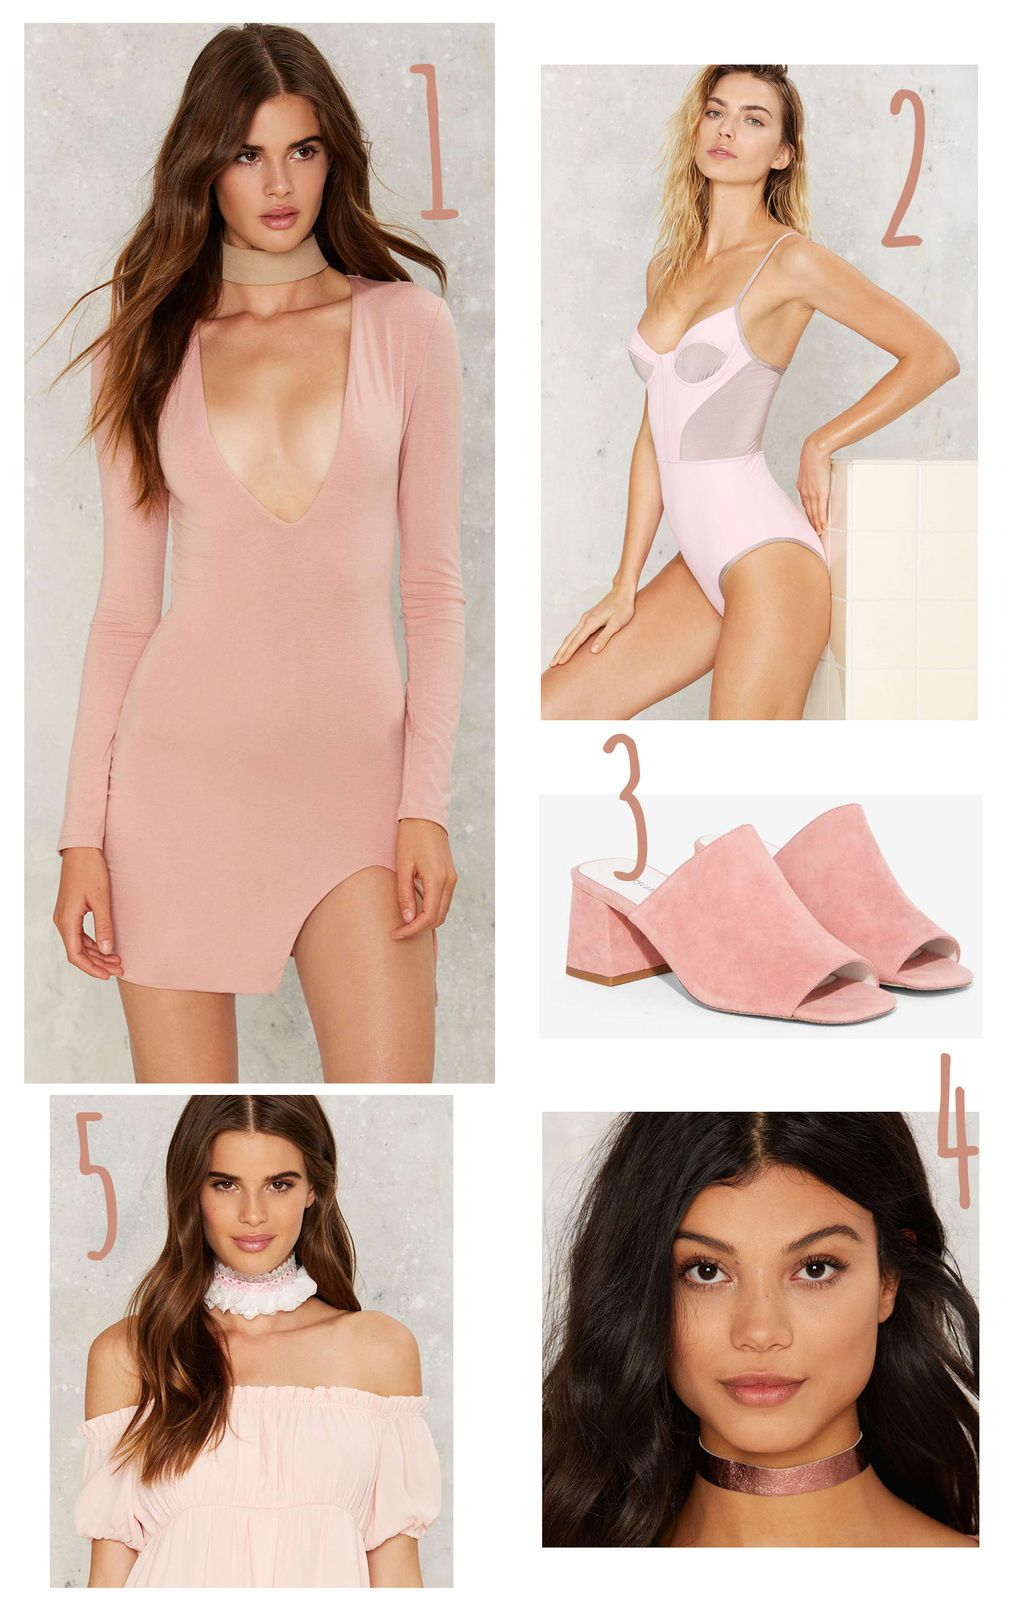 Loving Dusty Rose Lately... OOTD Inspiration